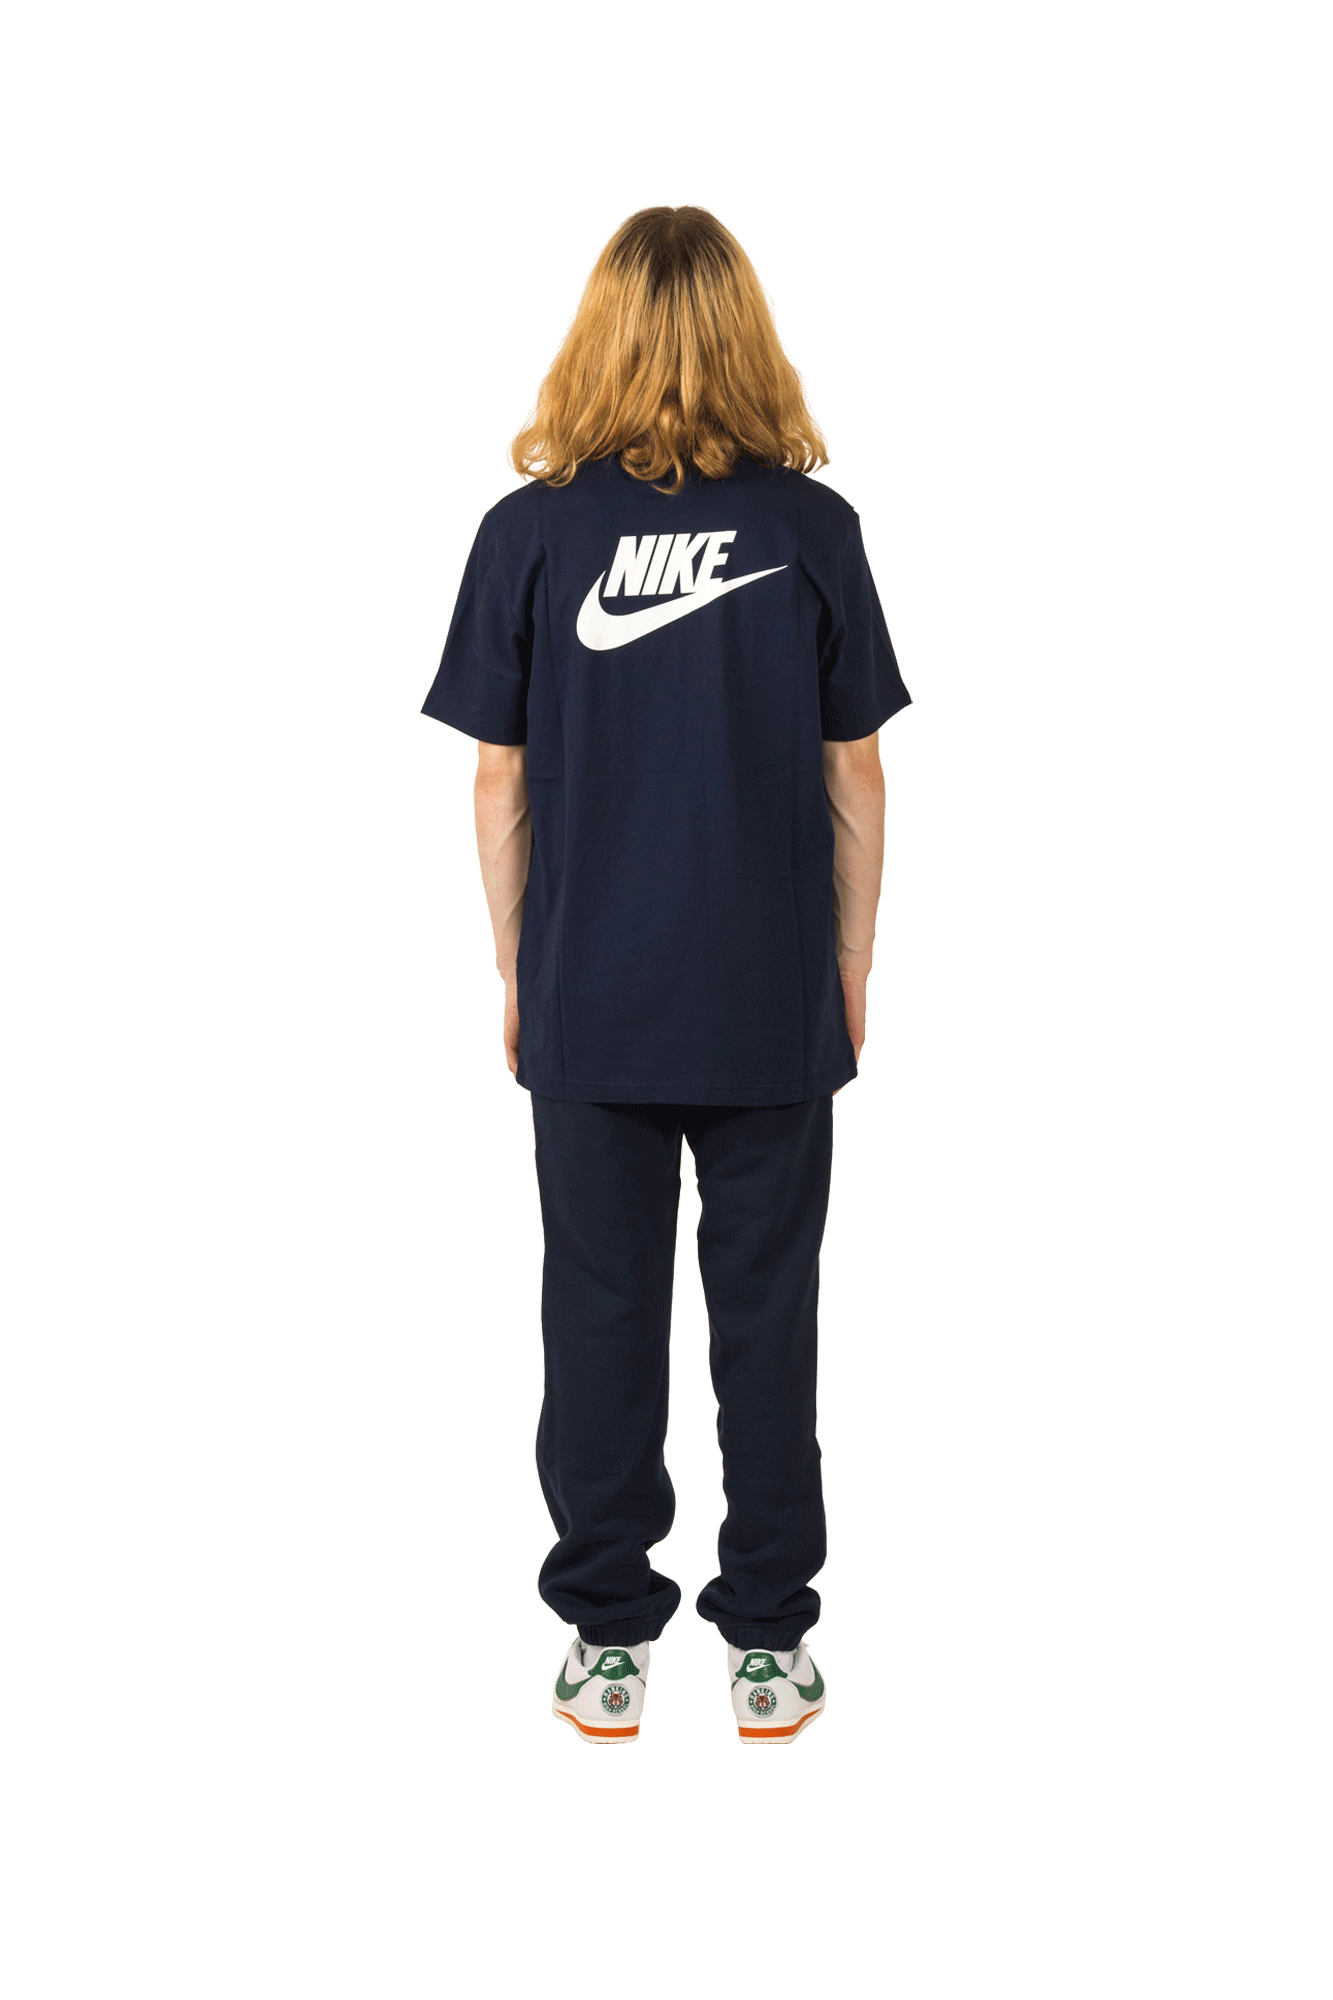 Nike T-Shirts M NRG SS Tee X Stranger Things Blue CK2342#000#419#XS - One Block Down